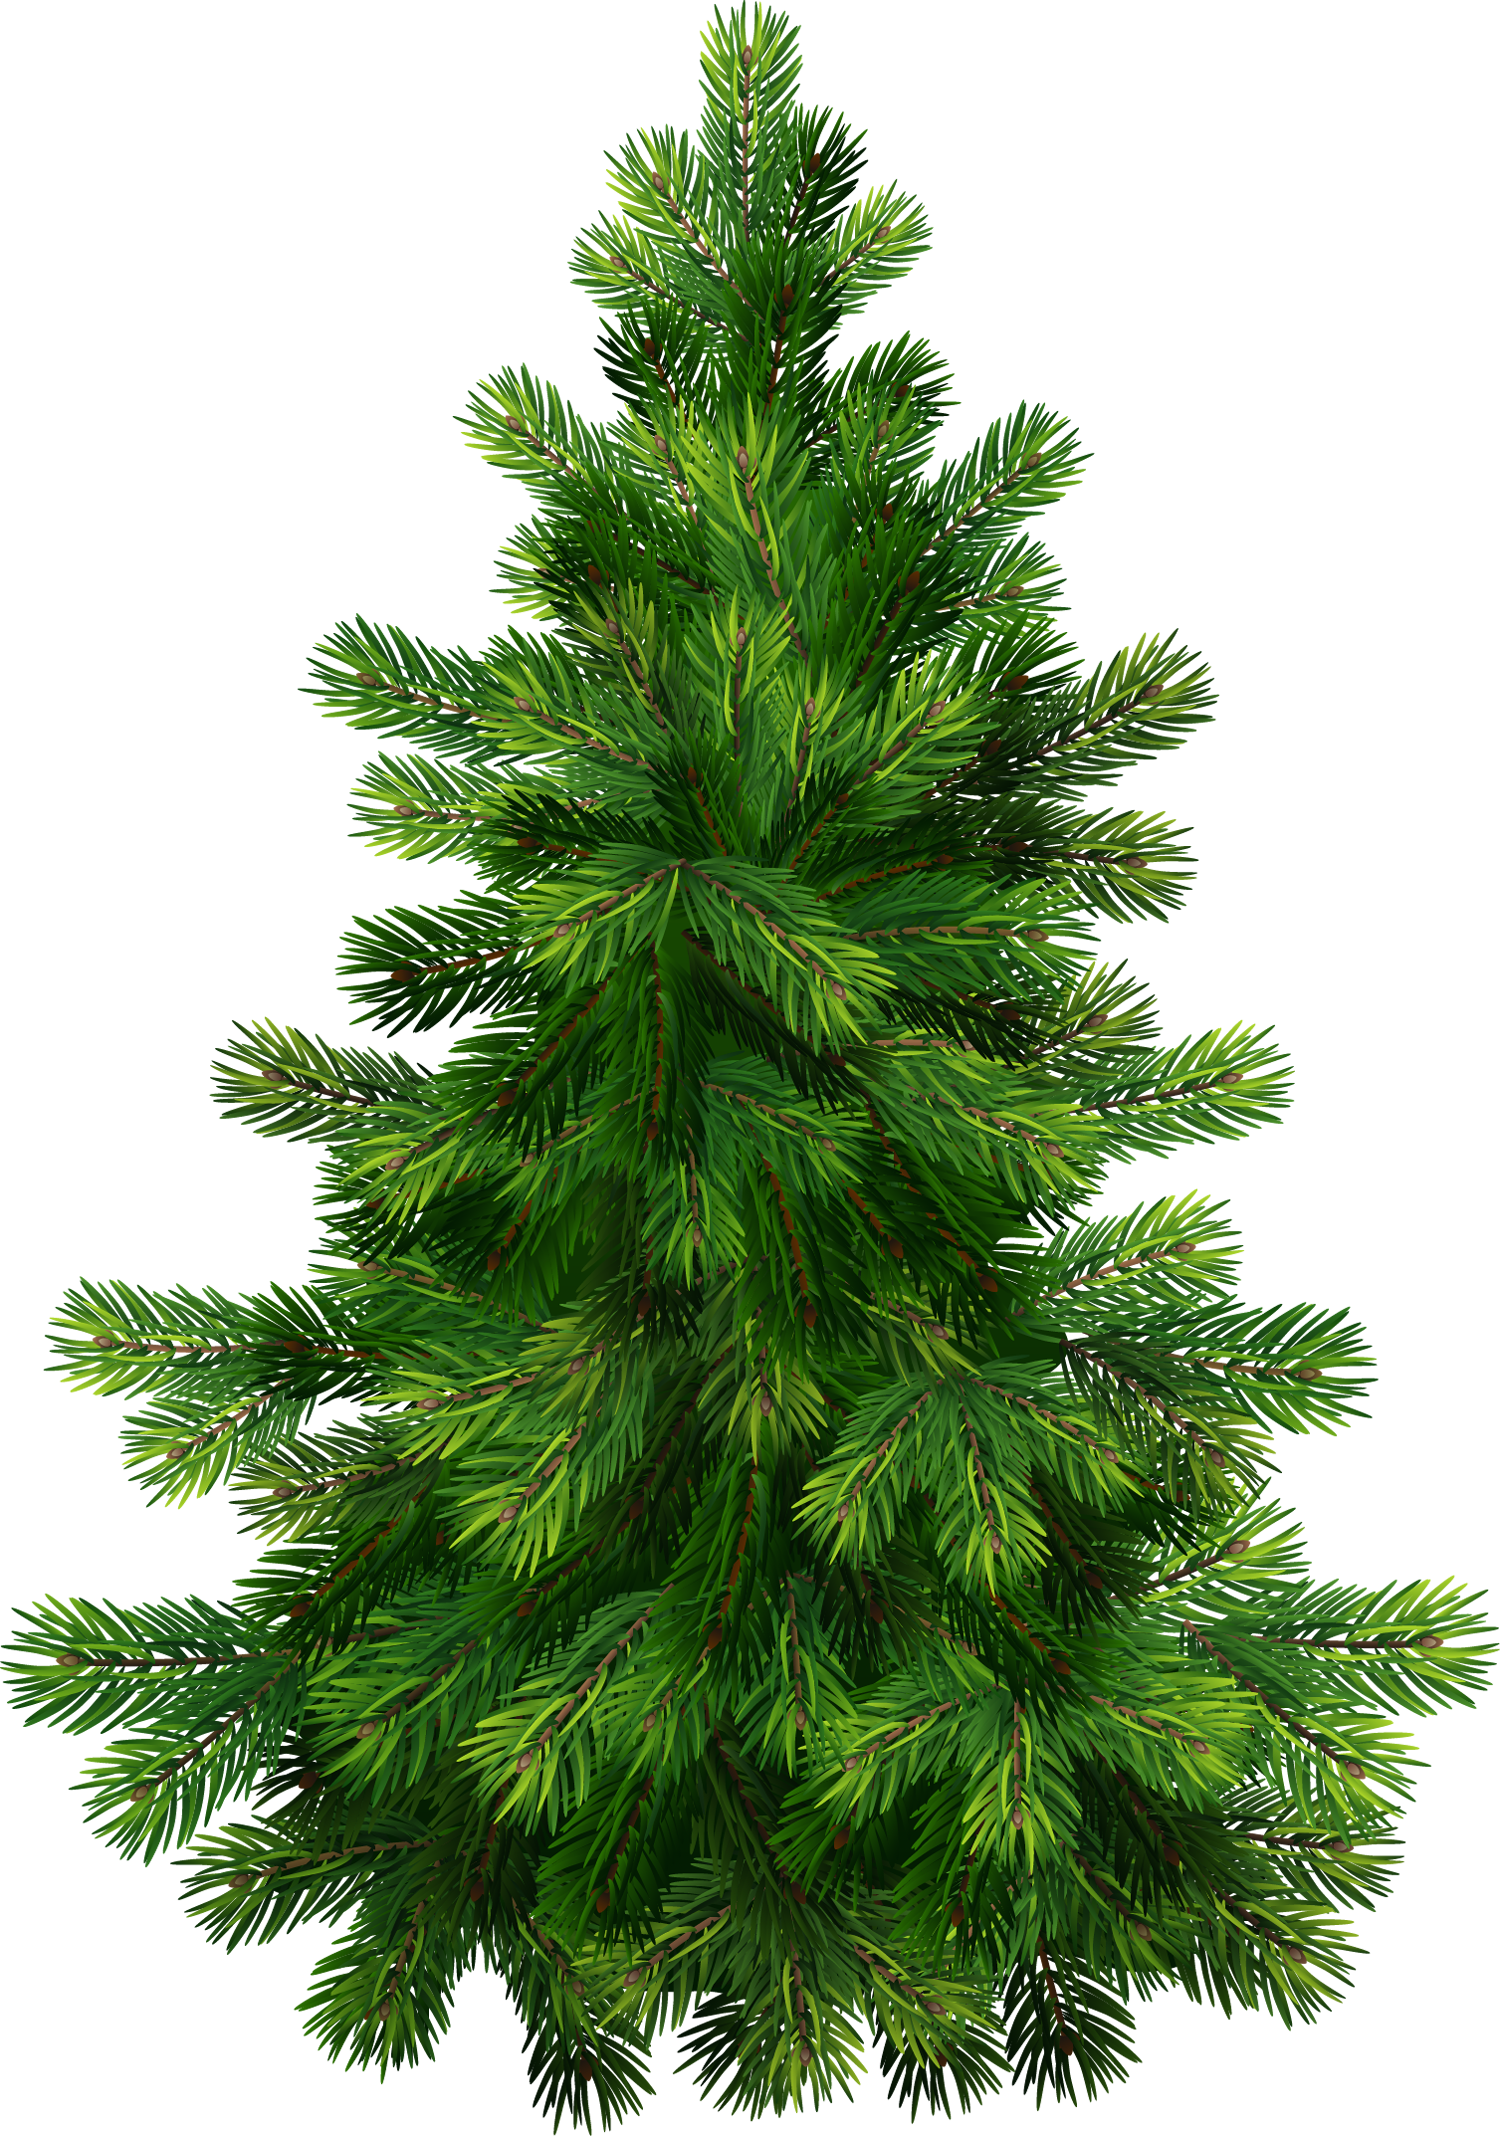 Transparent tree gallery yopriceville. Pine trees clipart png picture free library